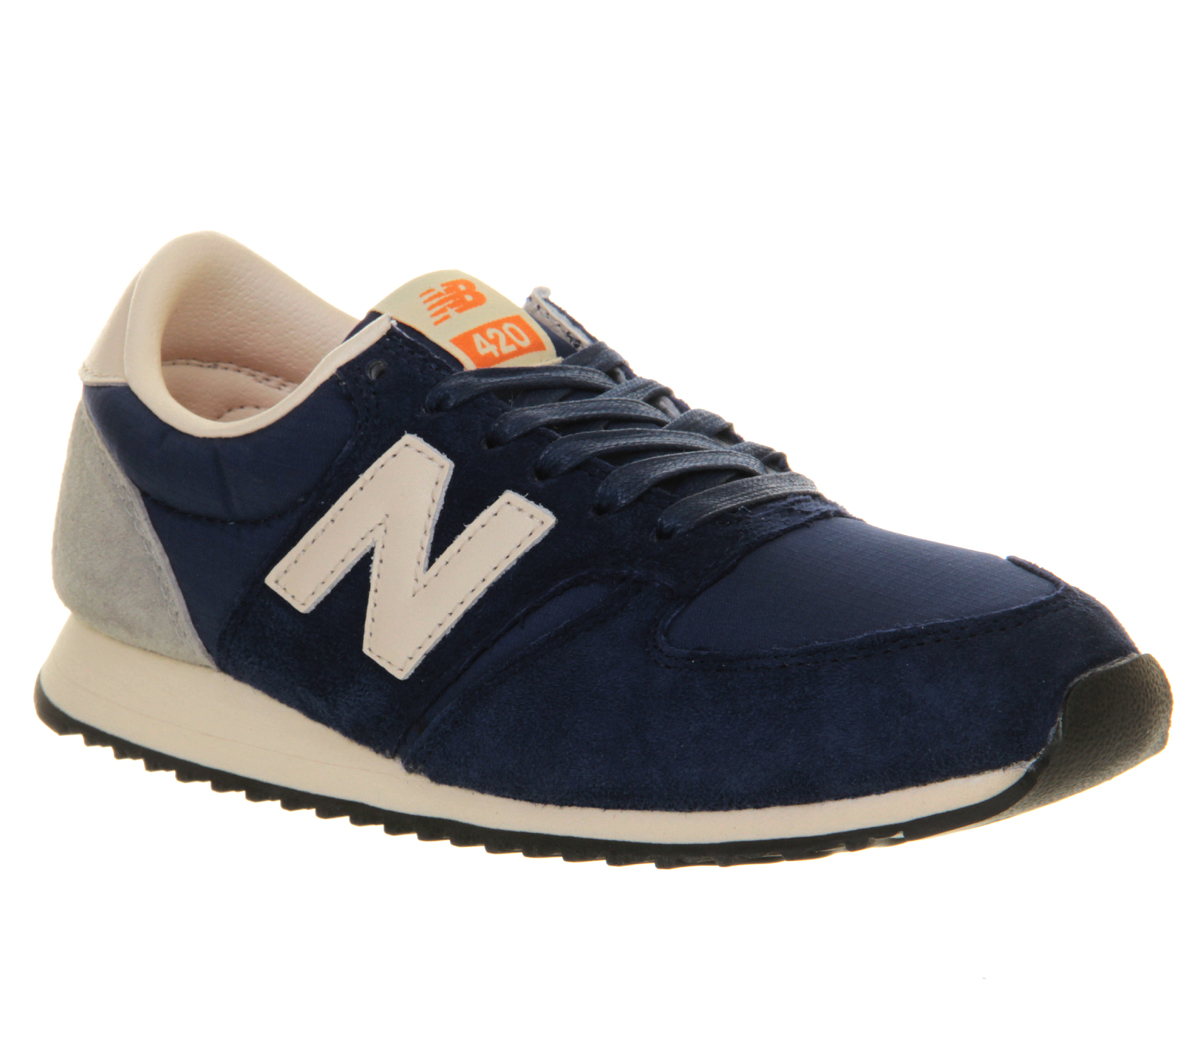 New-Balance-U420-ROYAL-BLUE-Trainers-Shoes